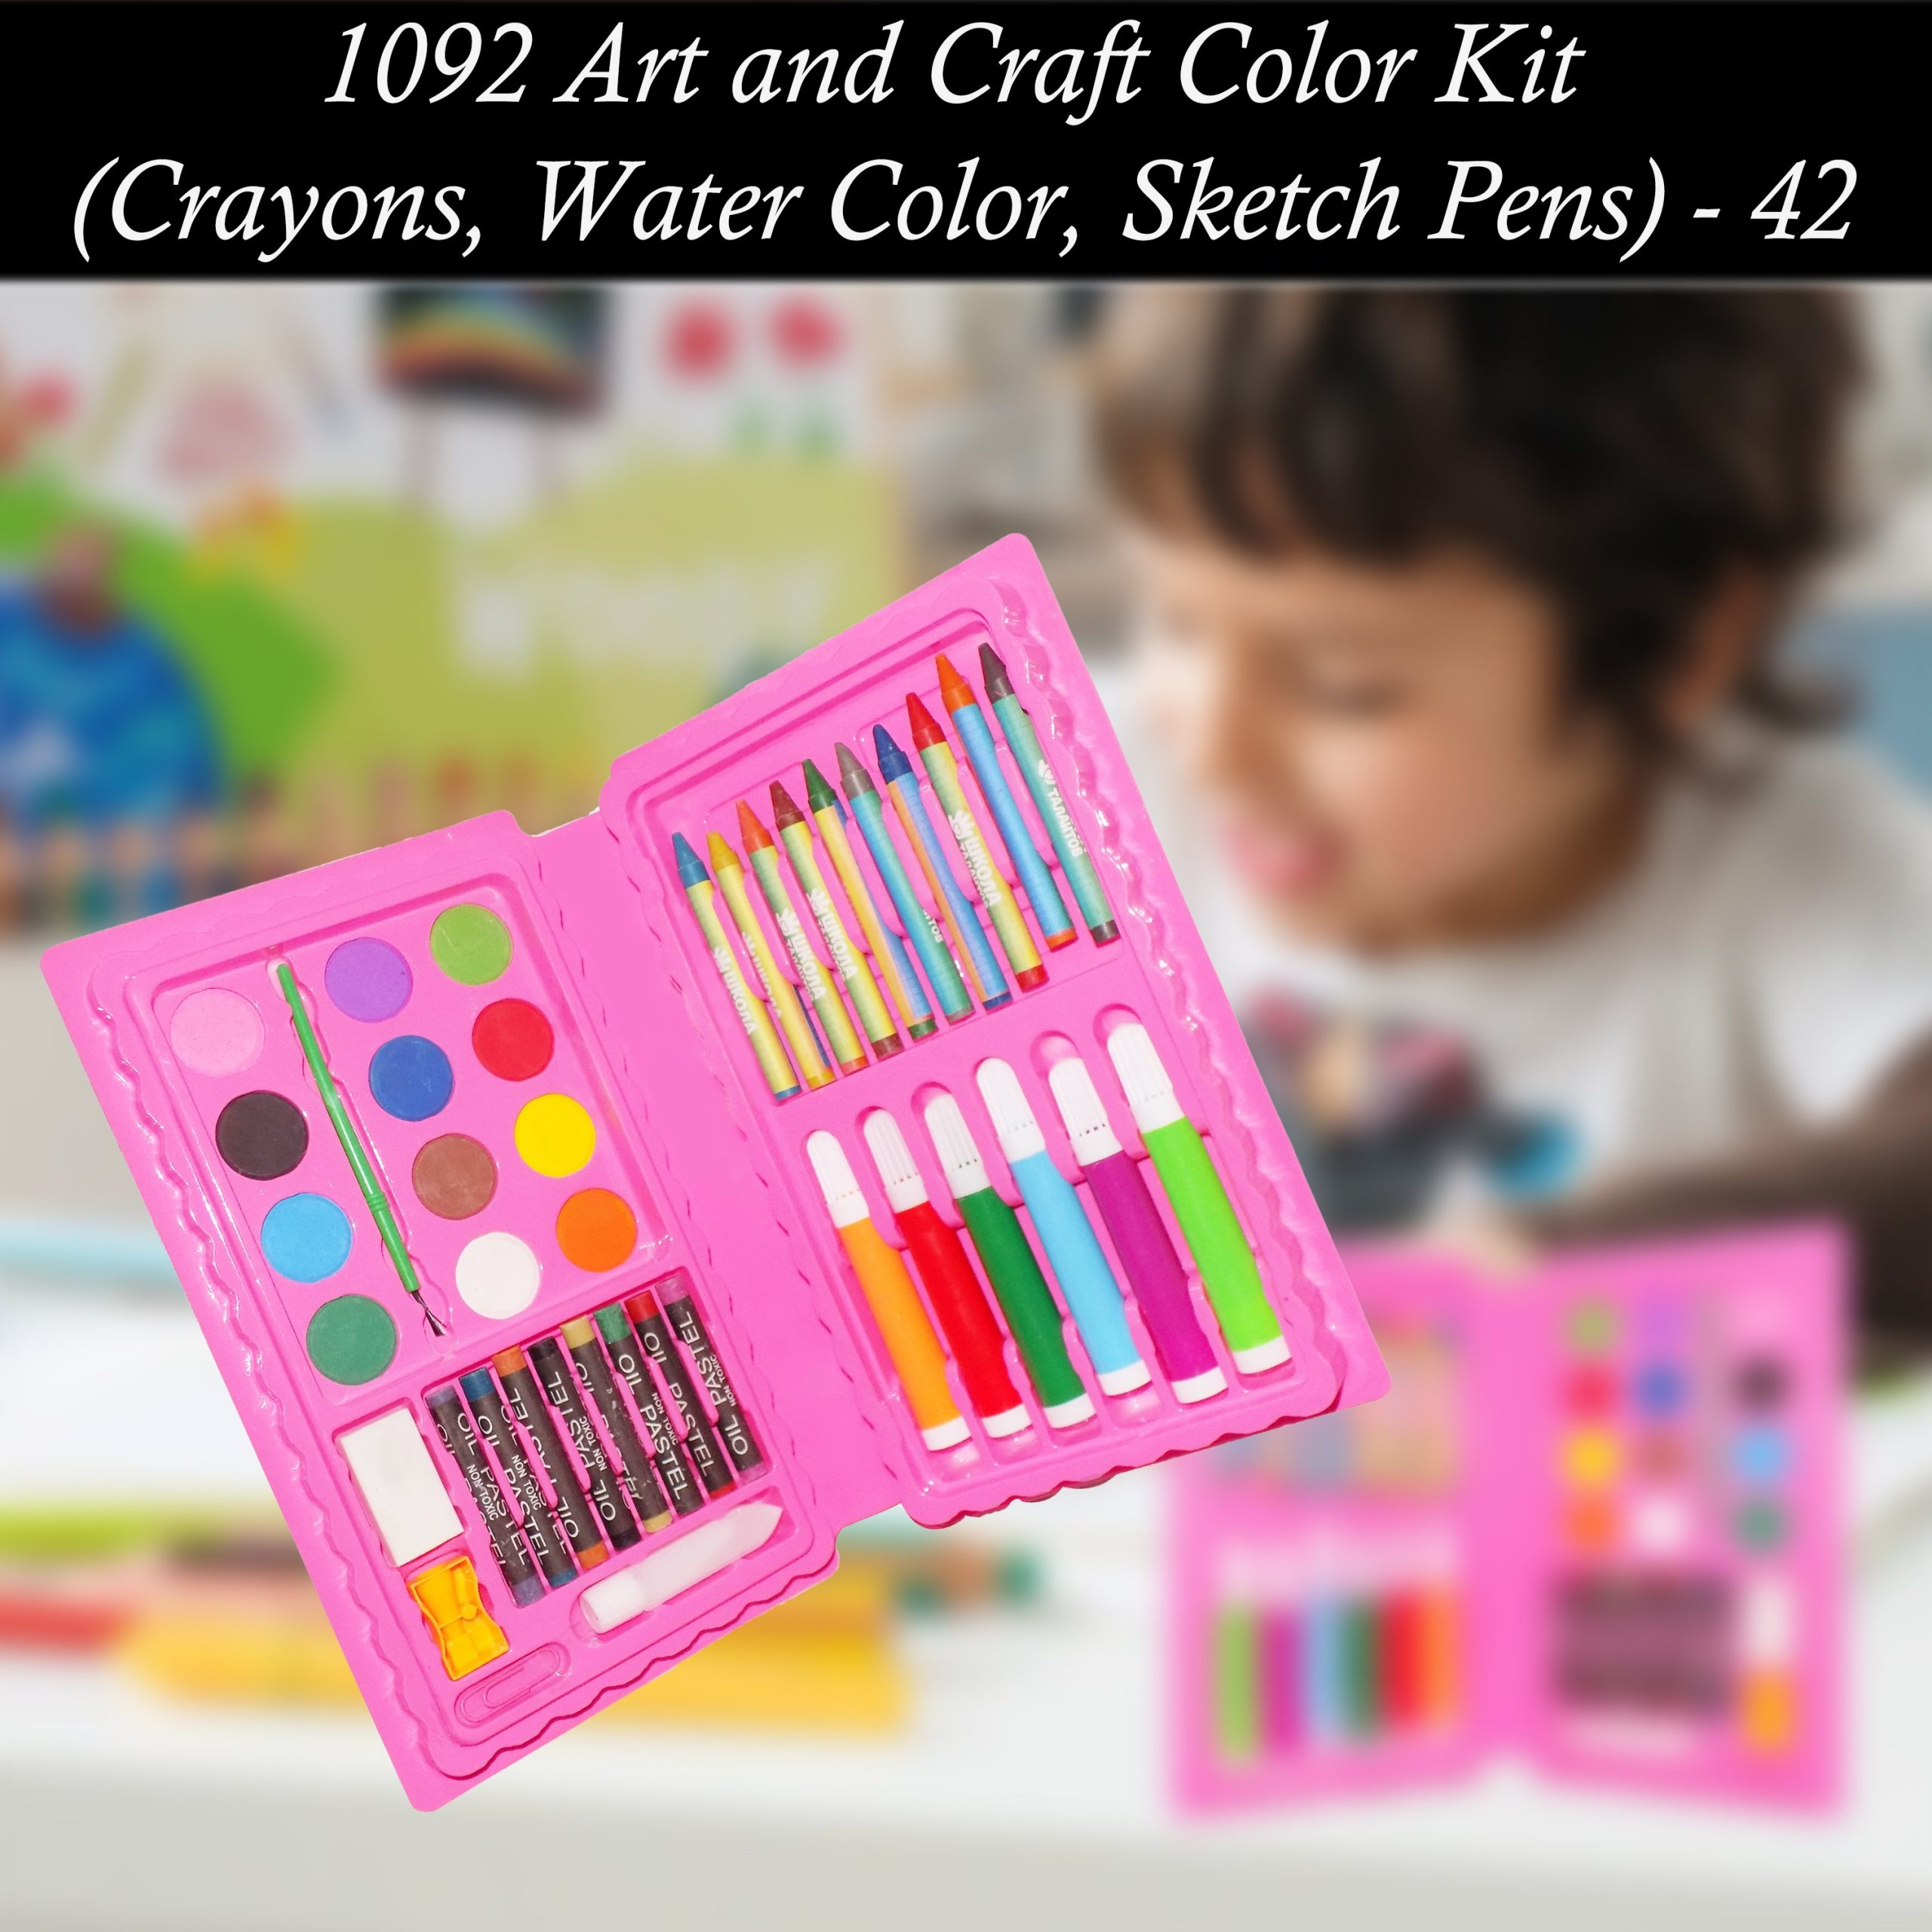 1092 Art and Craft Color Kit (Crayons, Water Color, Sketch Pens) - 42 Pcs -